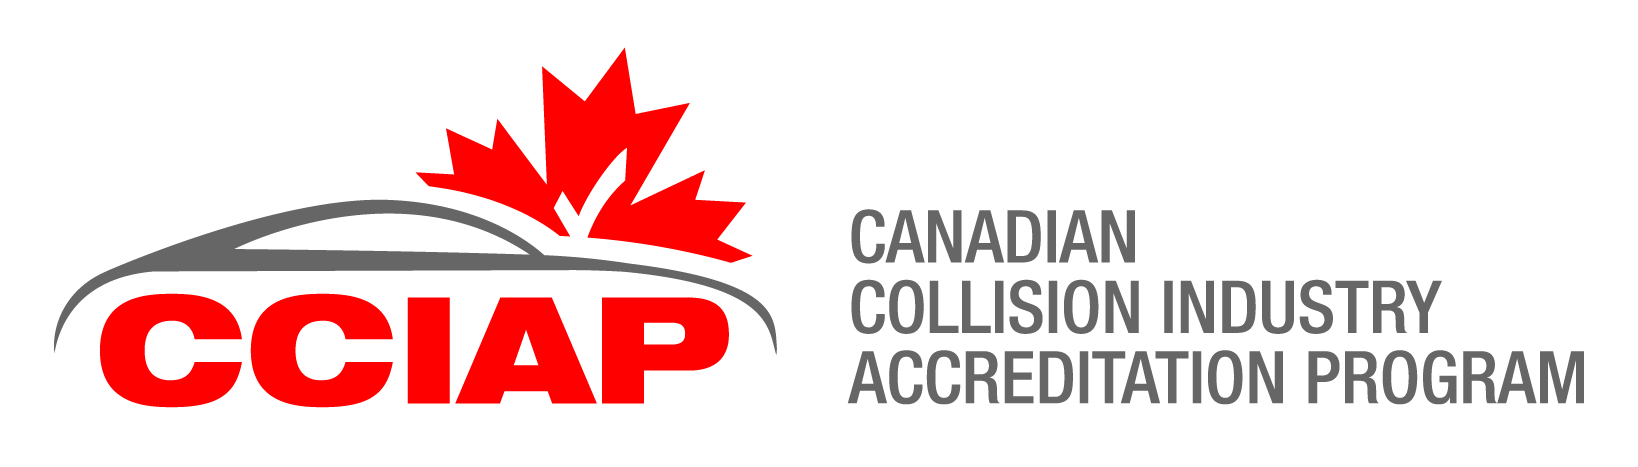 Canadian Collision Industry Accreditation Program (CCIAP)